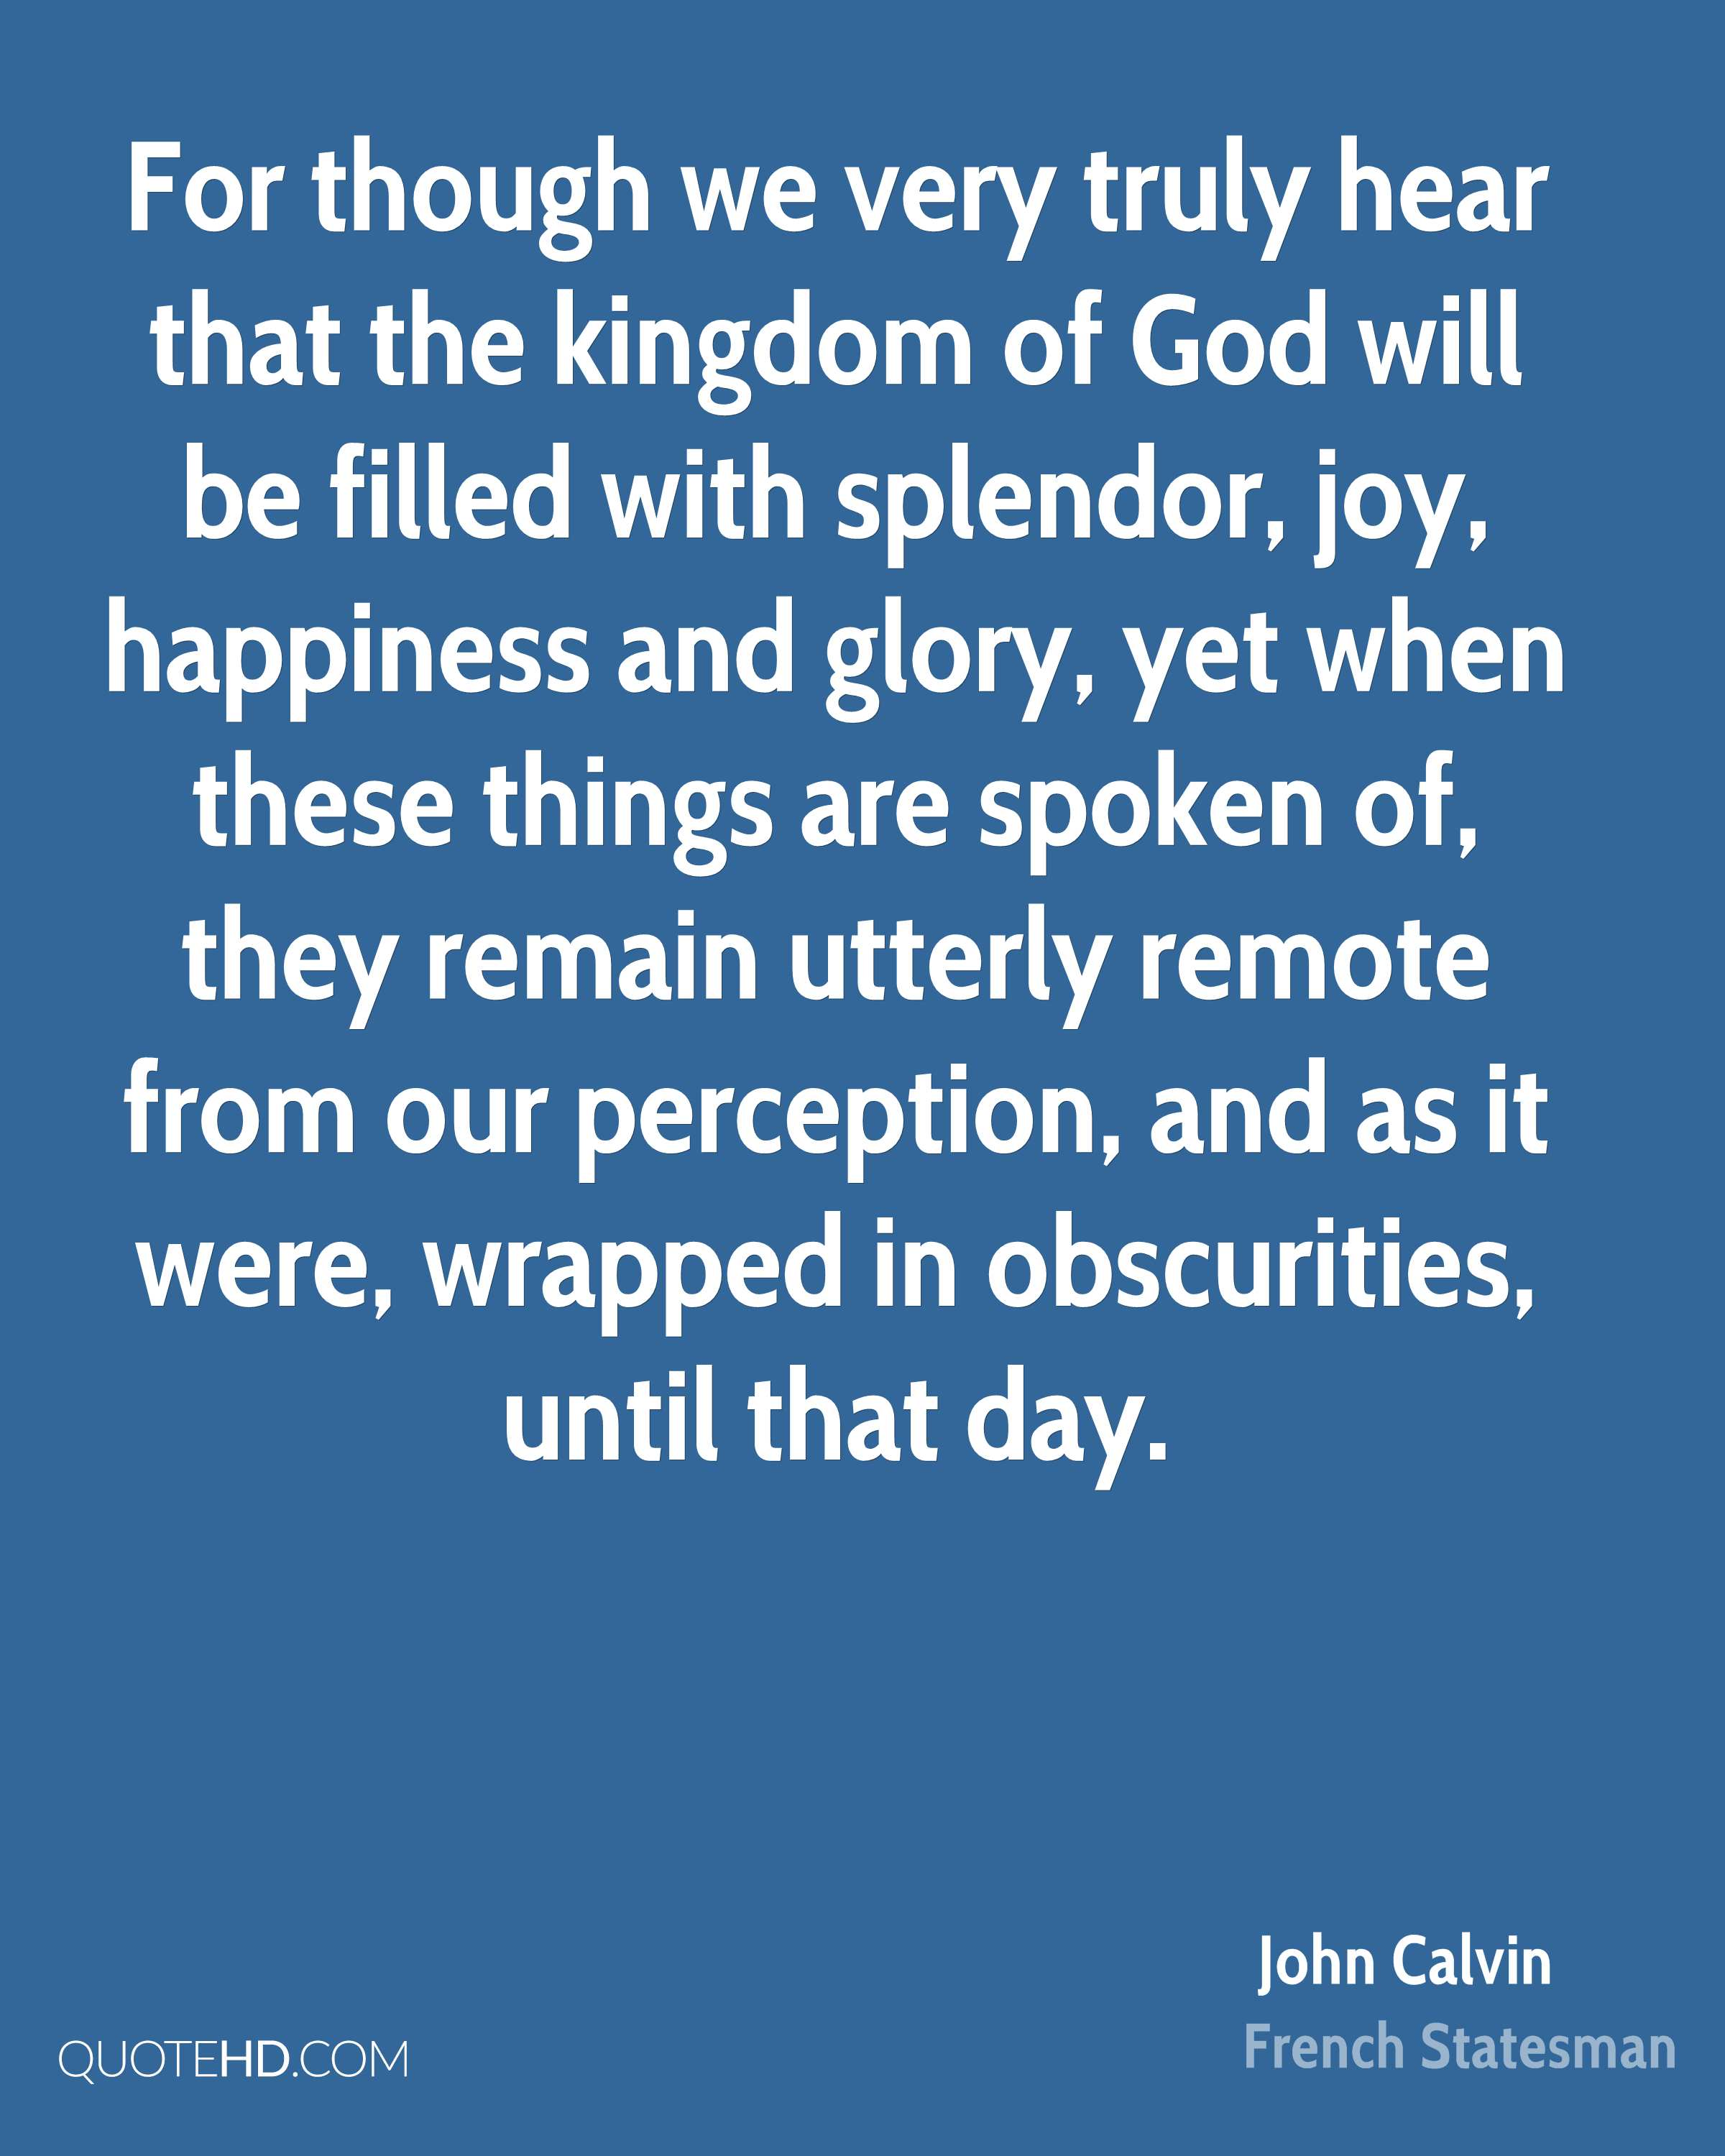 For though we very truly hear that the kingdom of God will be filled with splendor, joy, happiness and glory, yet when these things are spoken of, they remain utterly remote from our perception, and as it were, wrapped in obscurities, until that day.